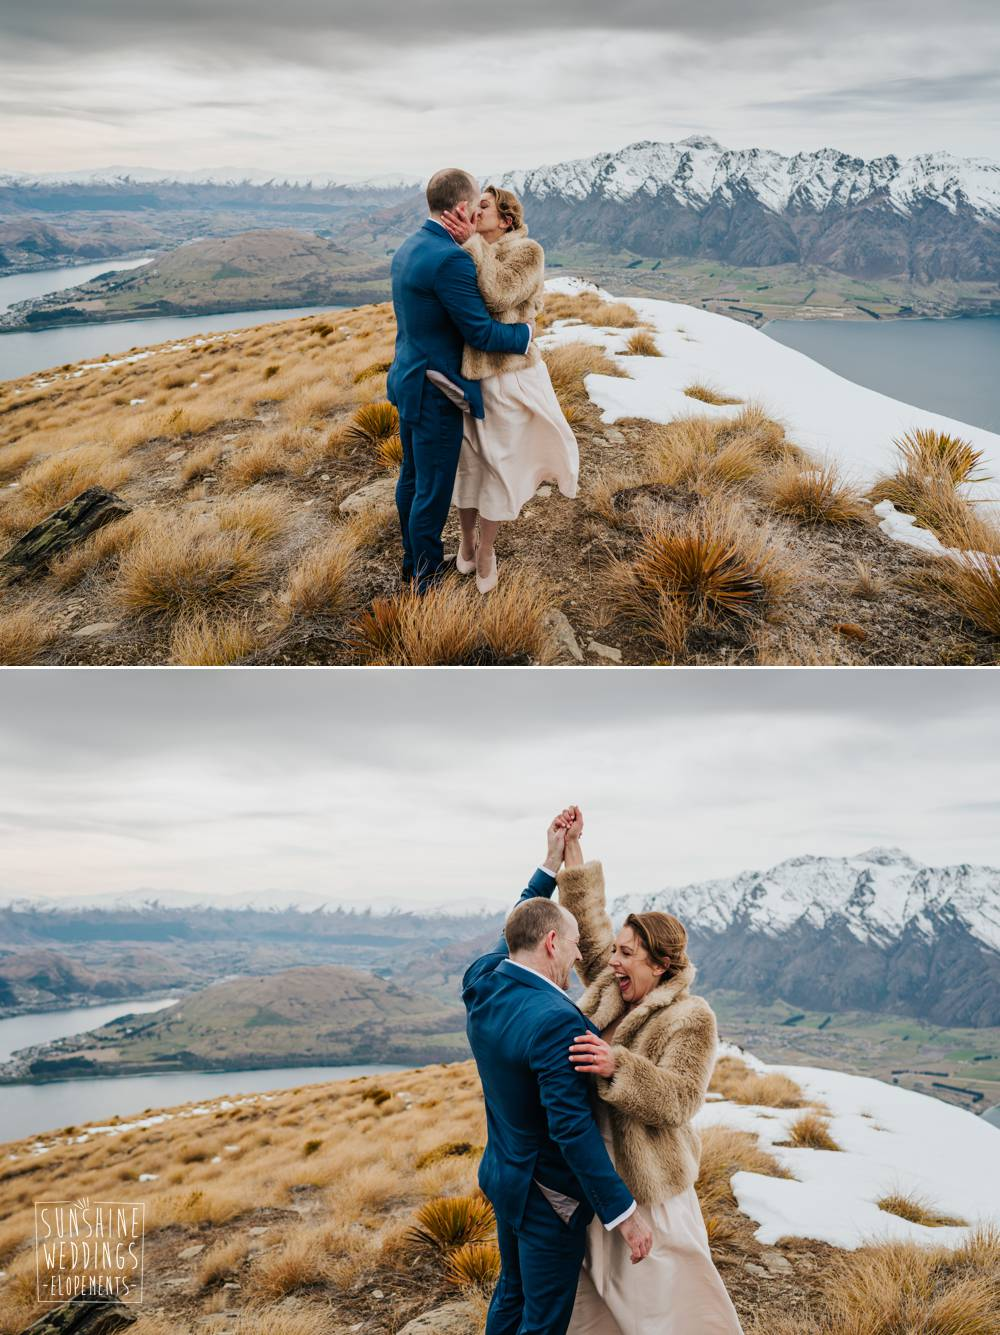 Elopement wedding celebration, NZ mountain wedding